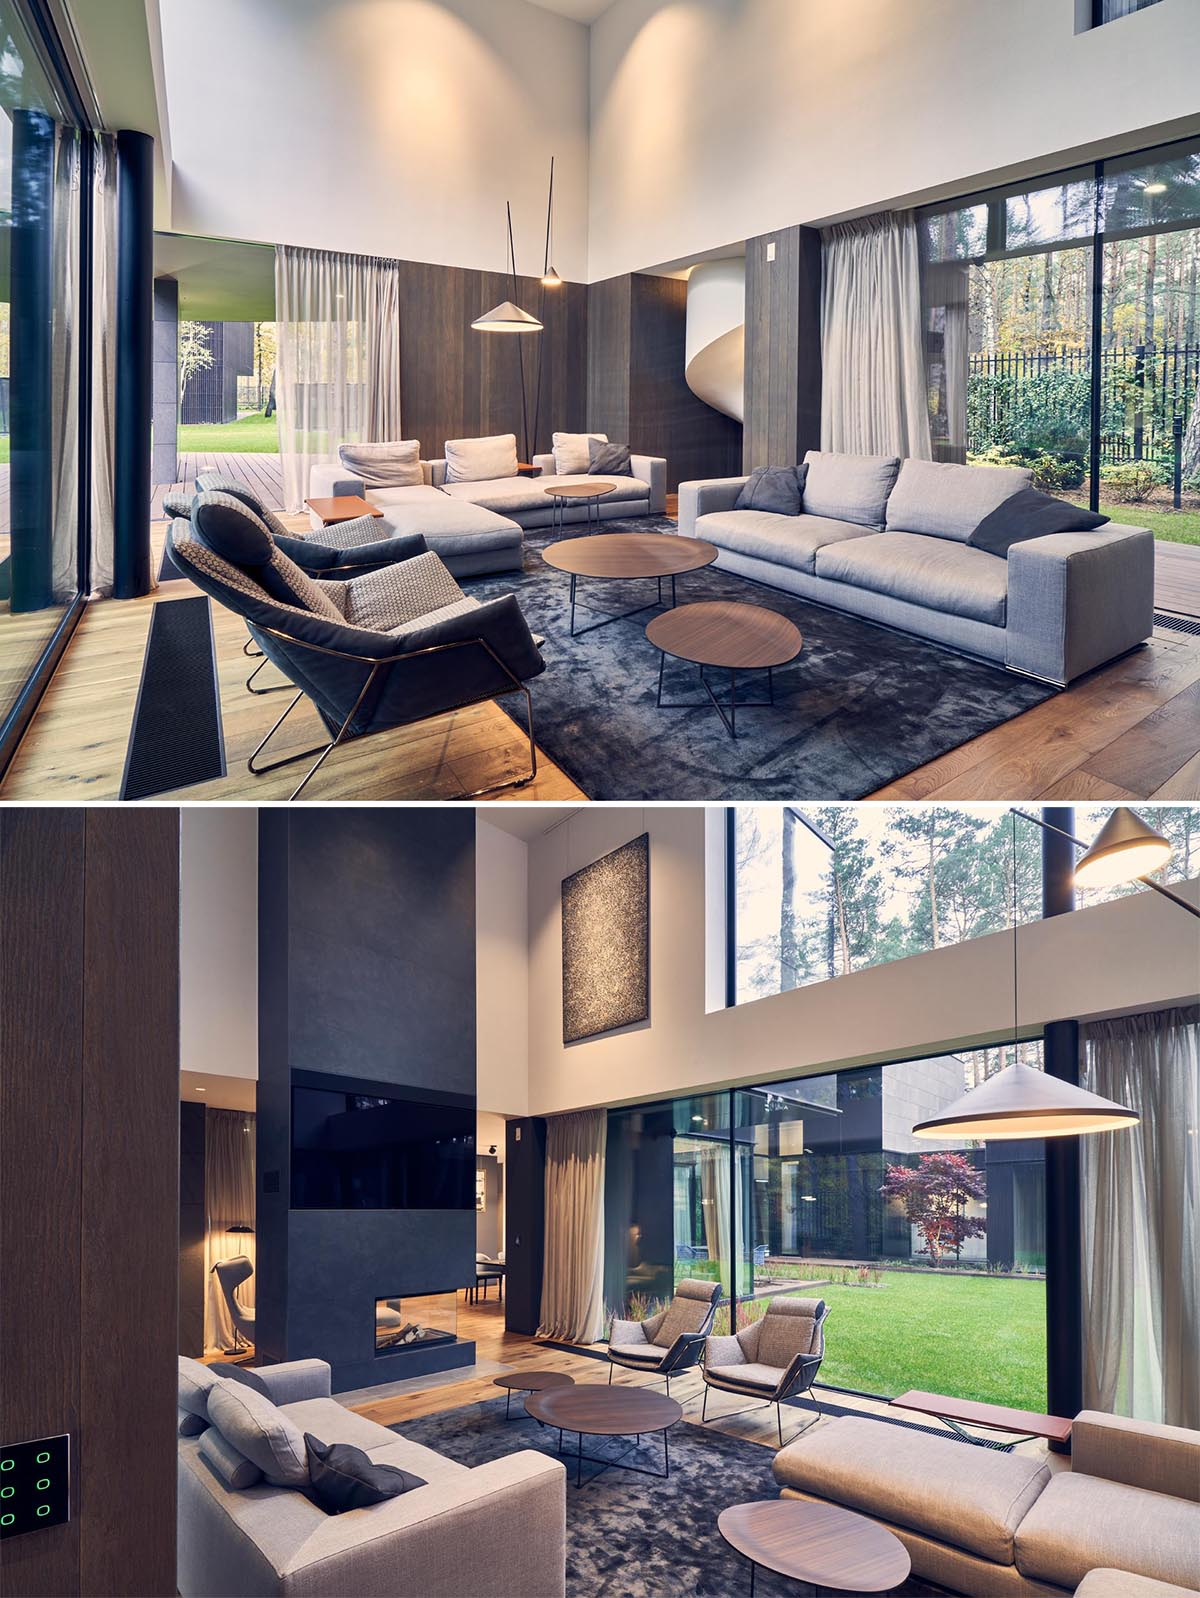 The interior of this modern home, like in the living room, showcases warm wood floors, expansive windows, and a double height ceiling.